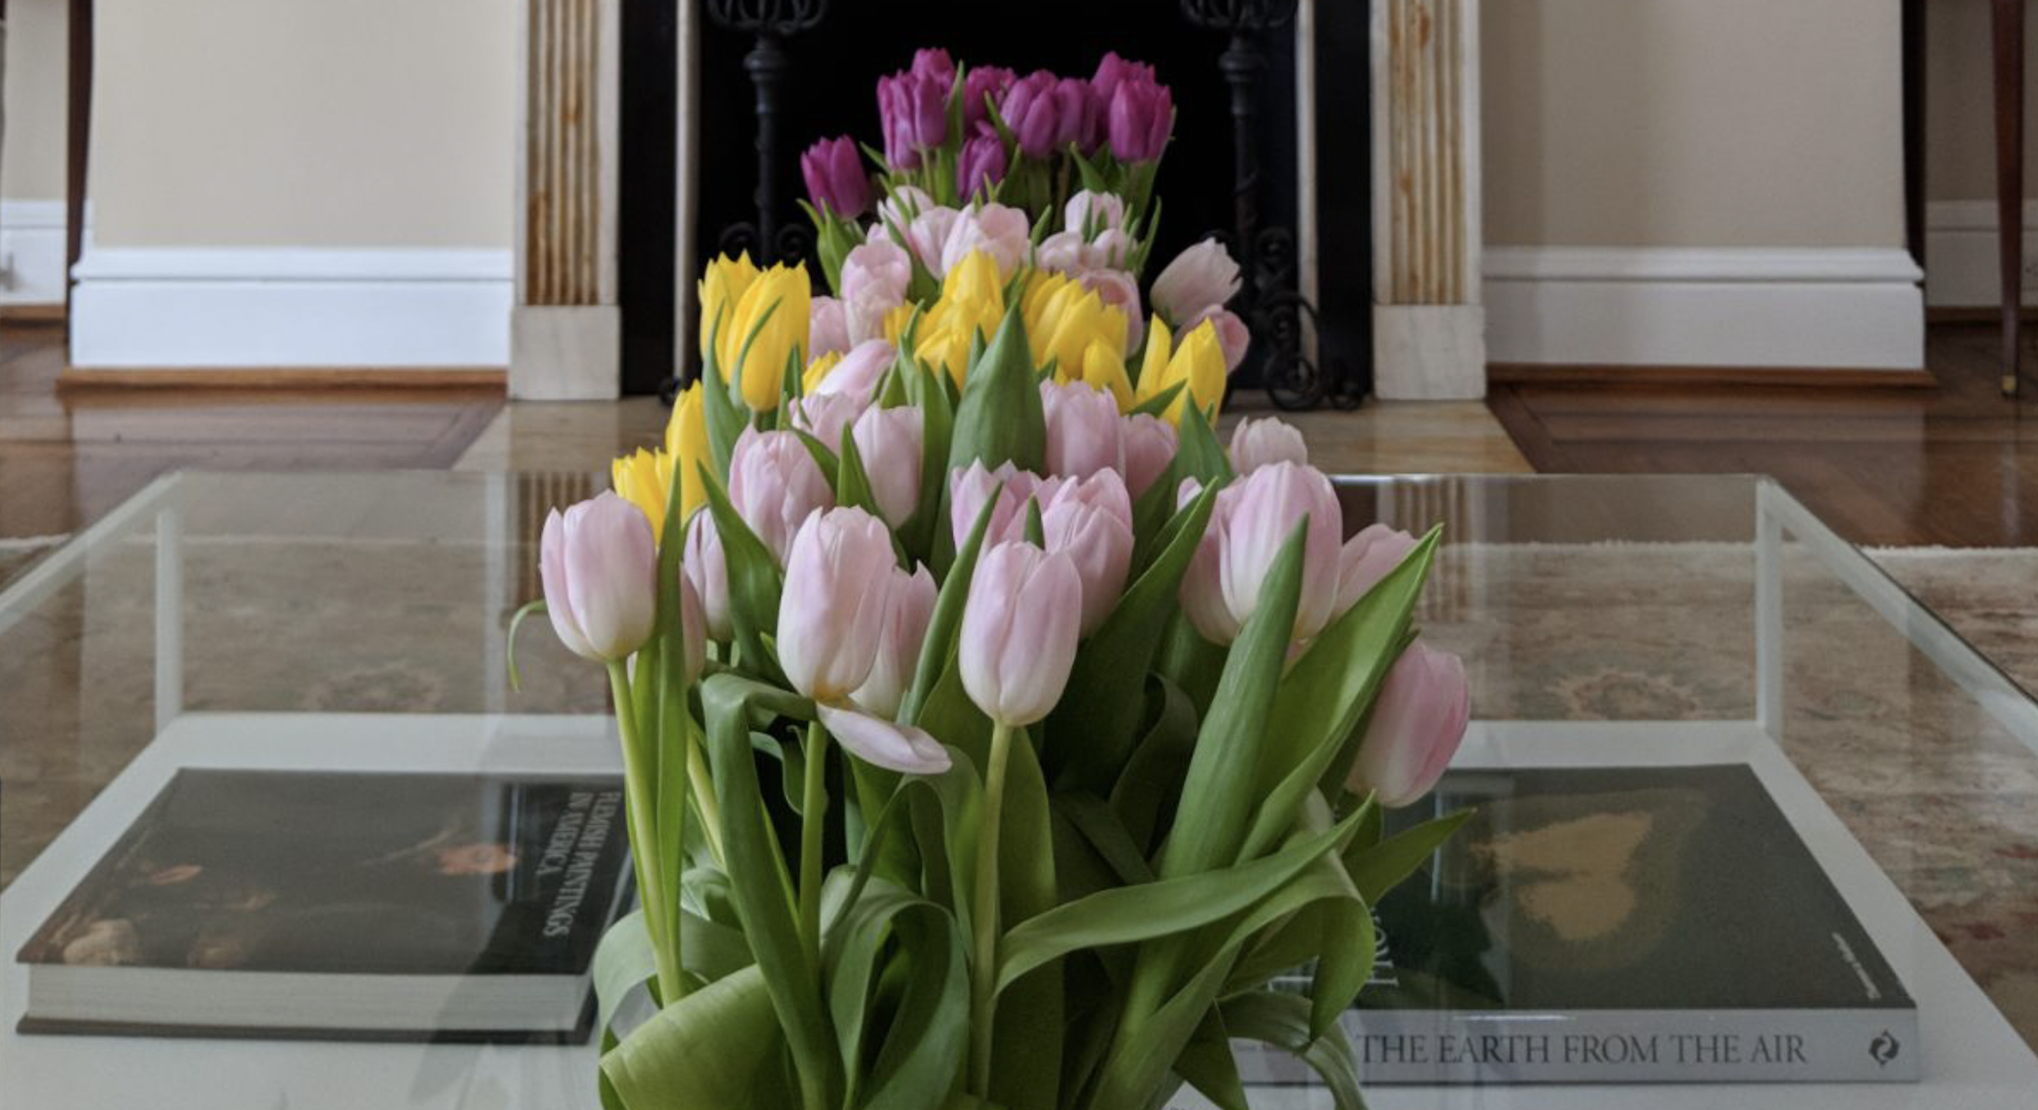 15,000 flowers to brighten ambassador's residence for Tulip Days